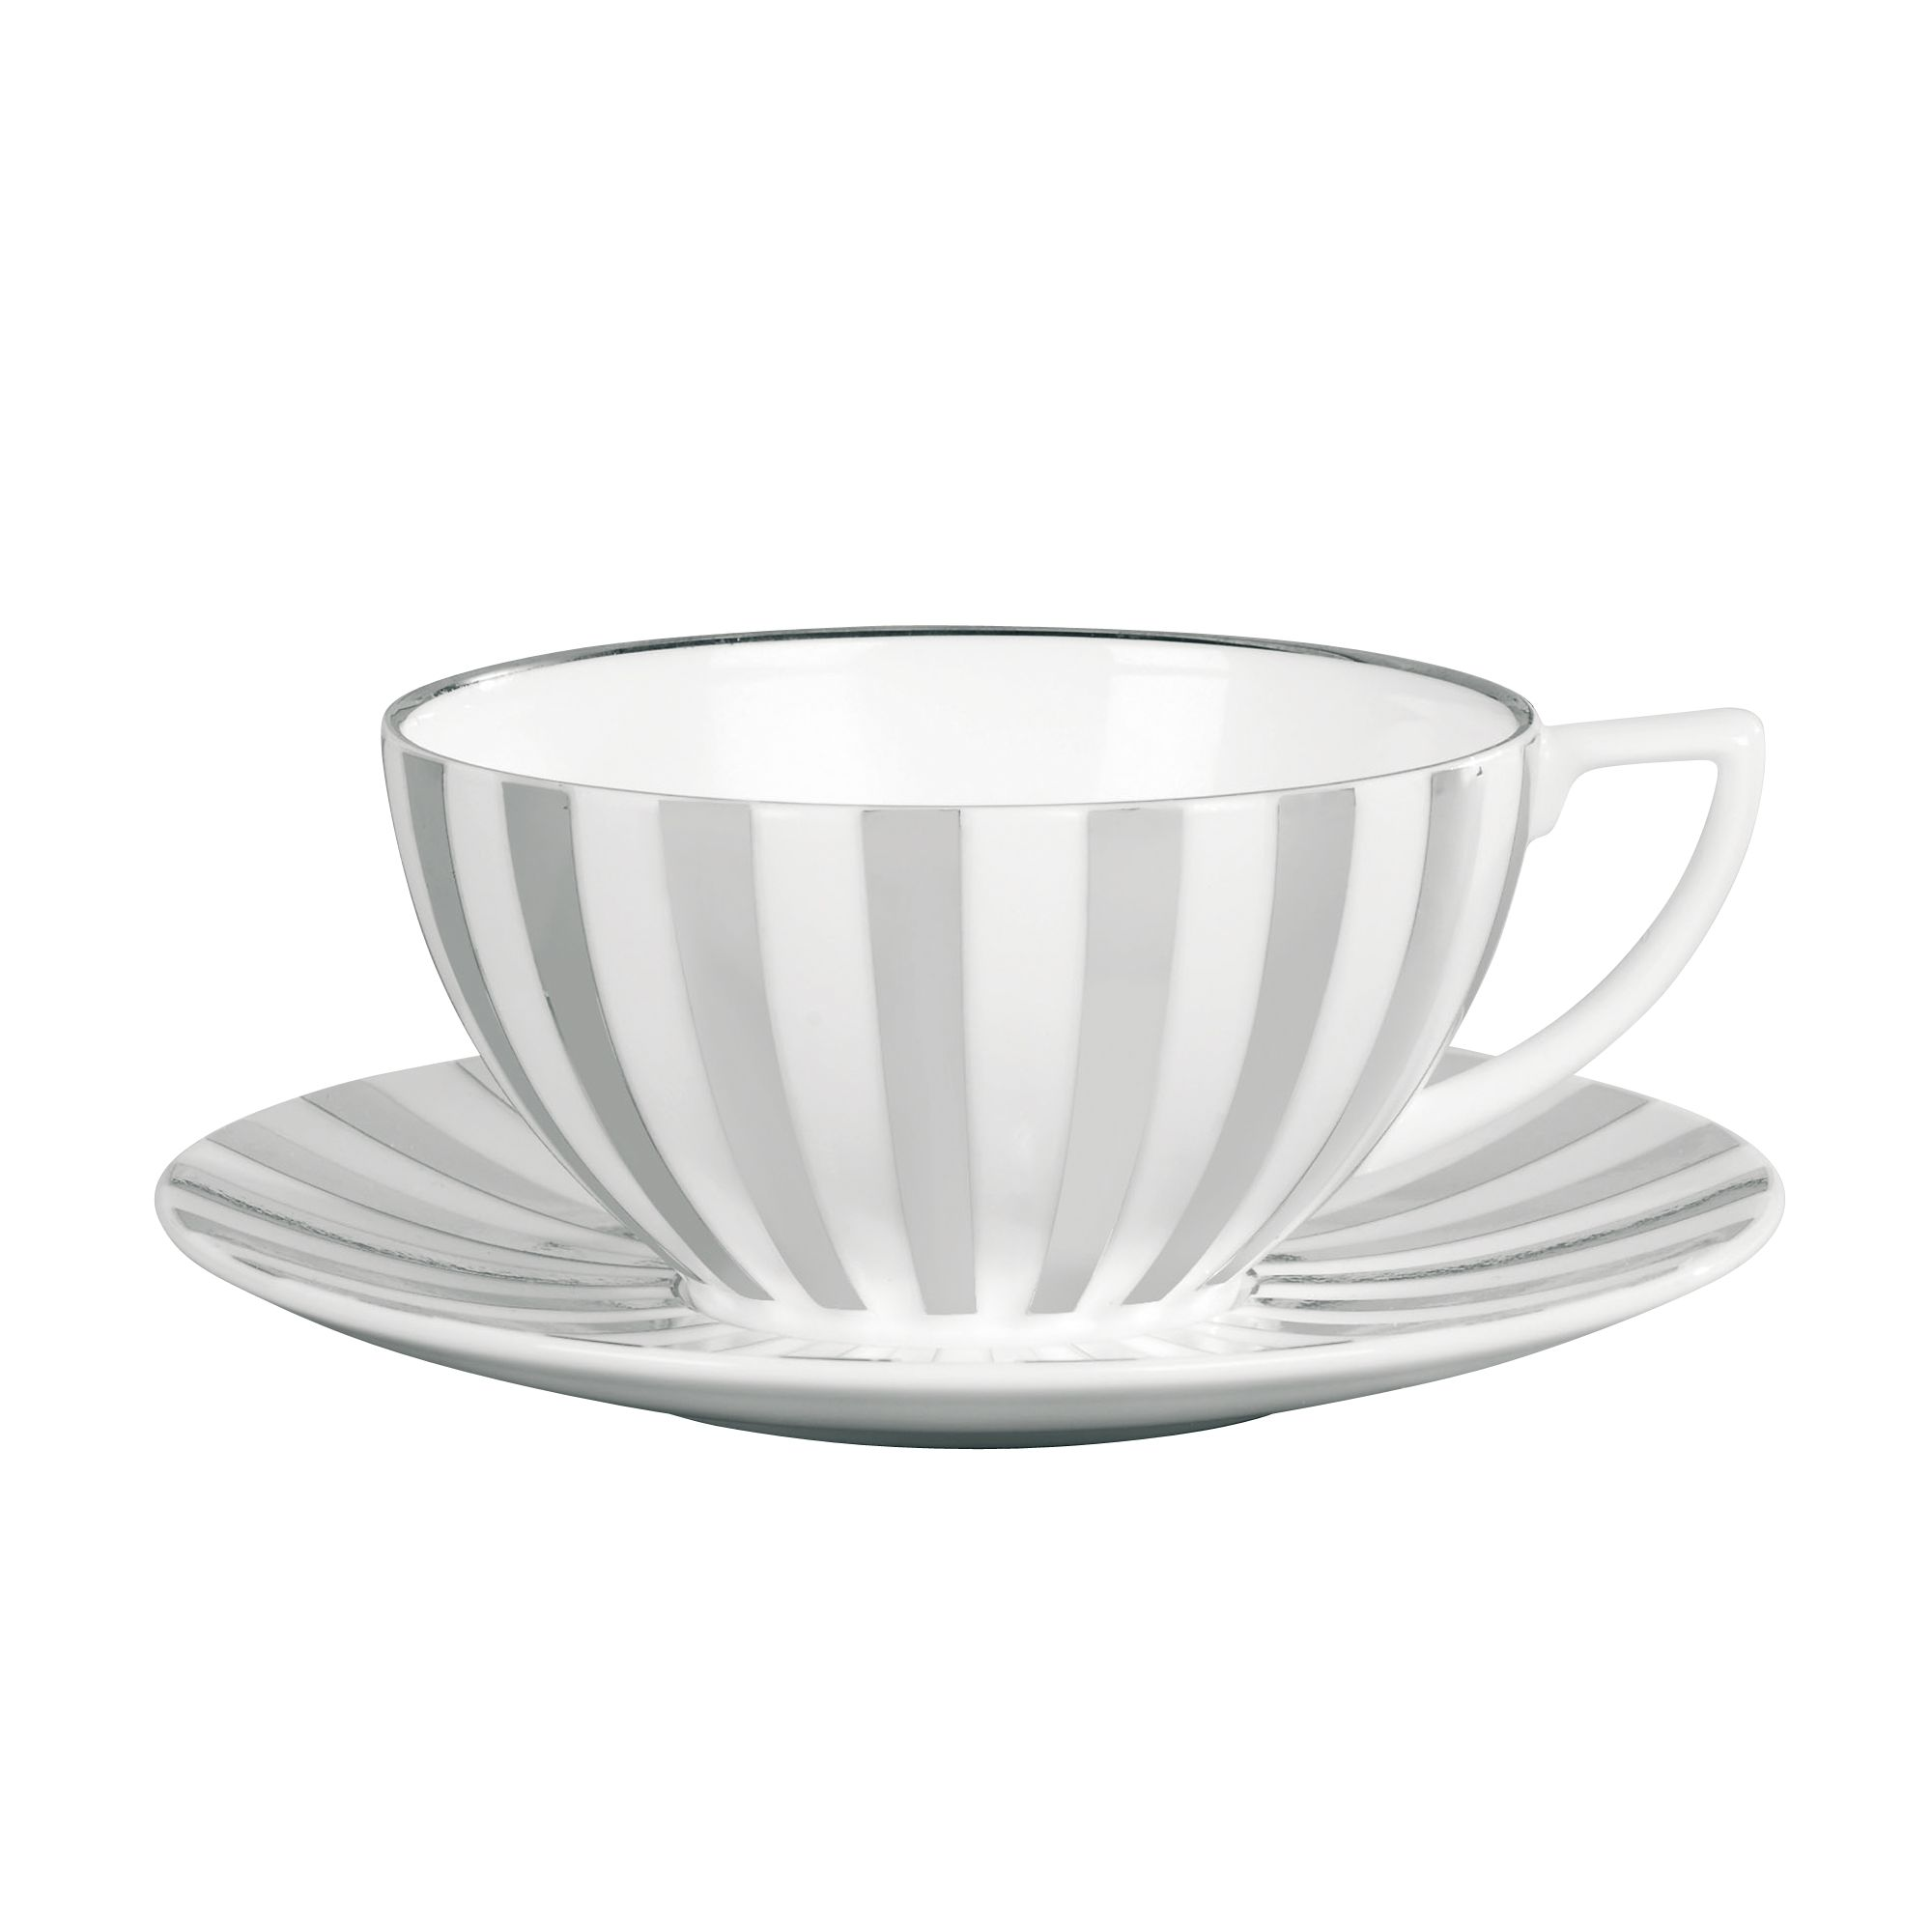 Platinum Striped Teacup